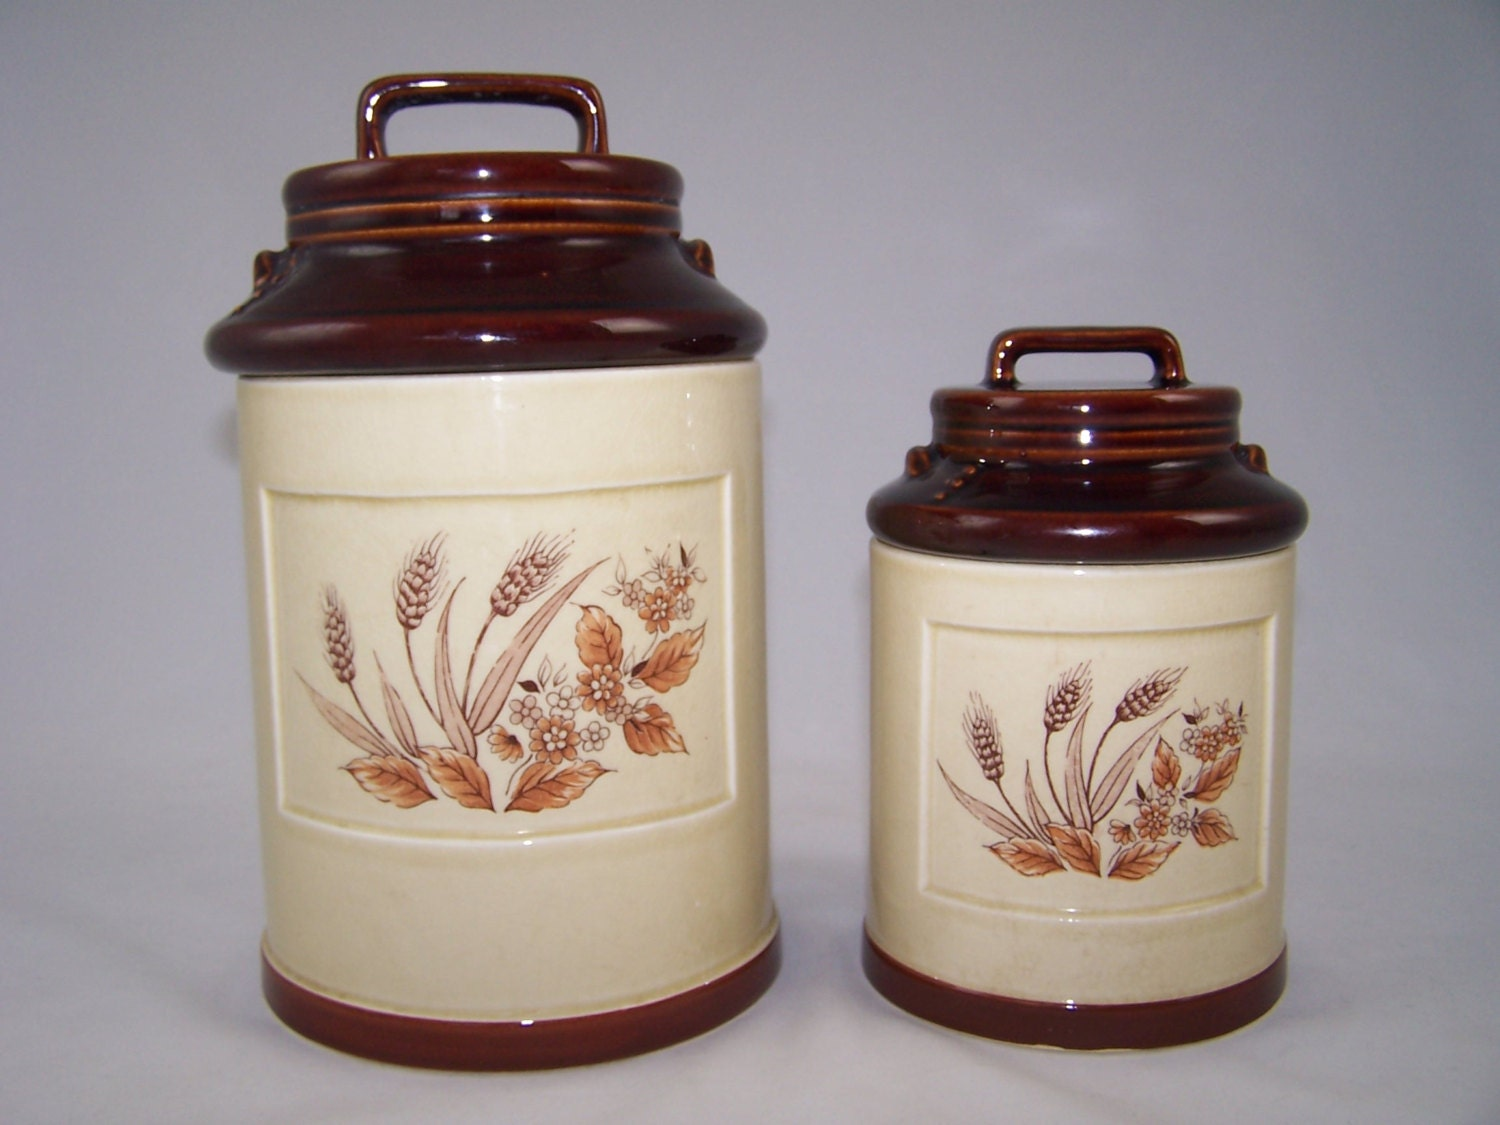 vintage ceramic kitchen canister set 2 1960 s handled fioritura ceramic kitchen canister set